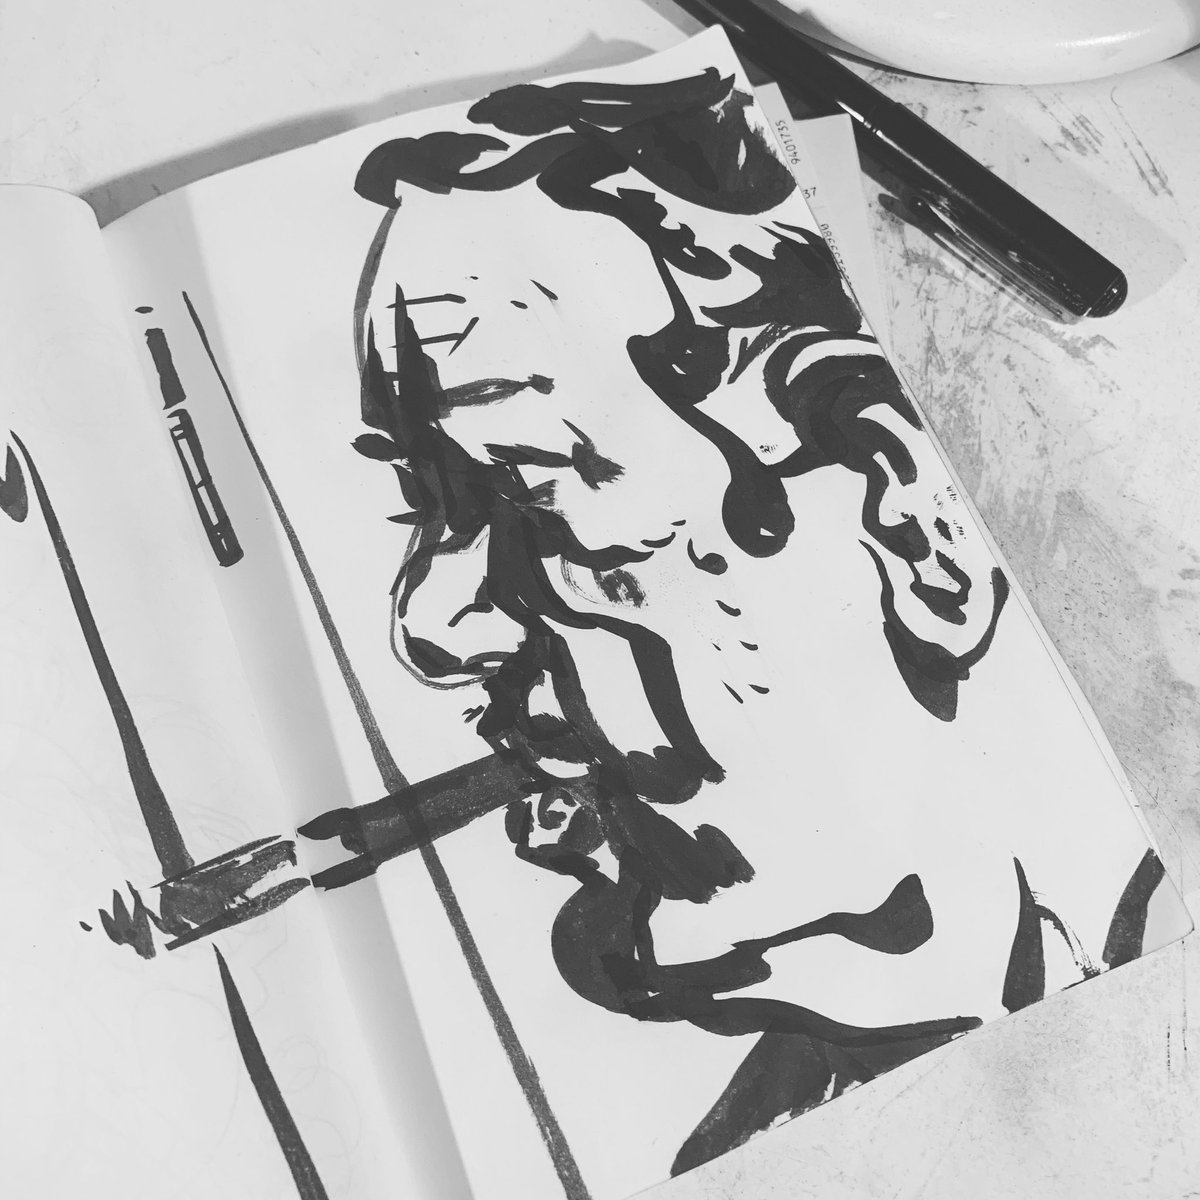 Touch of Evil // #testtest #ink #warmup #sketch #movie #draw #drawing #pentelpocketbrush #chrisvisions<br>http://pic.twitter.com/klh9mkEUDl